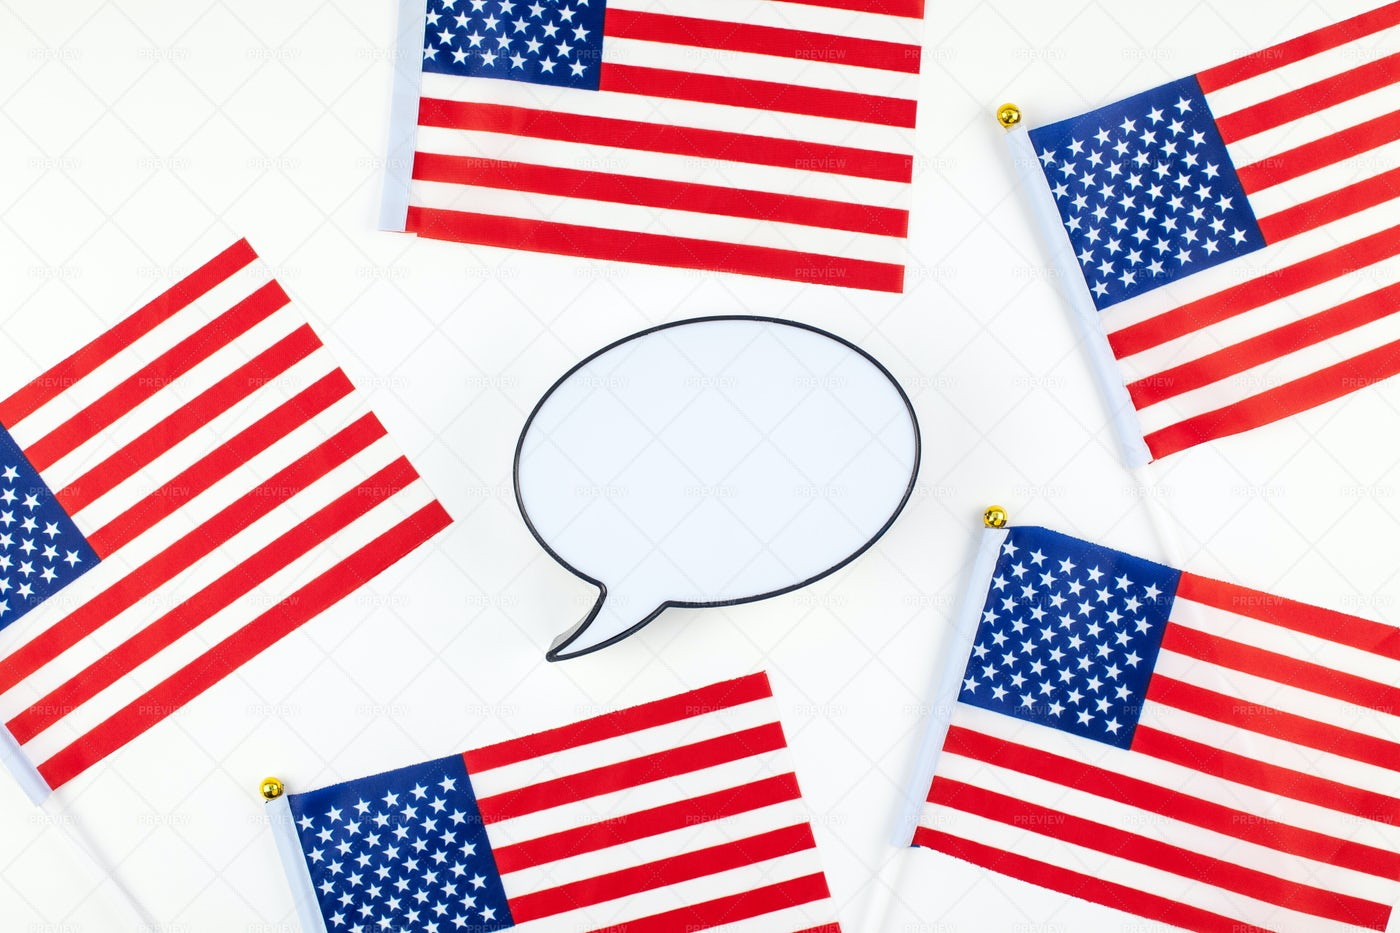 American Flags And Bubble Mockup: Stock Photos